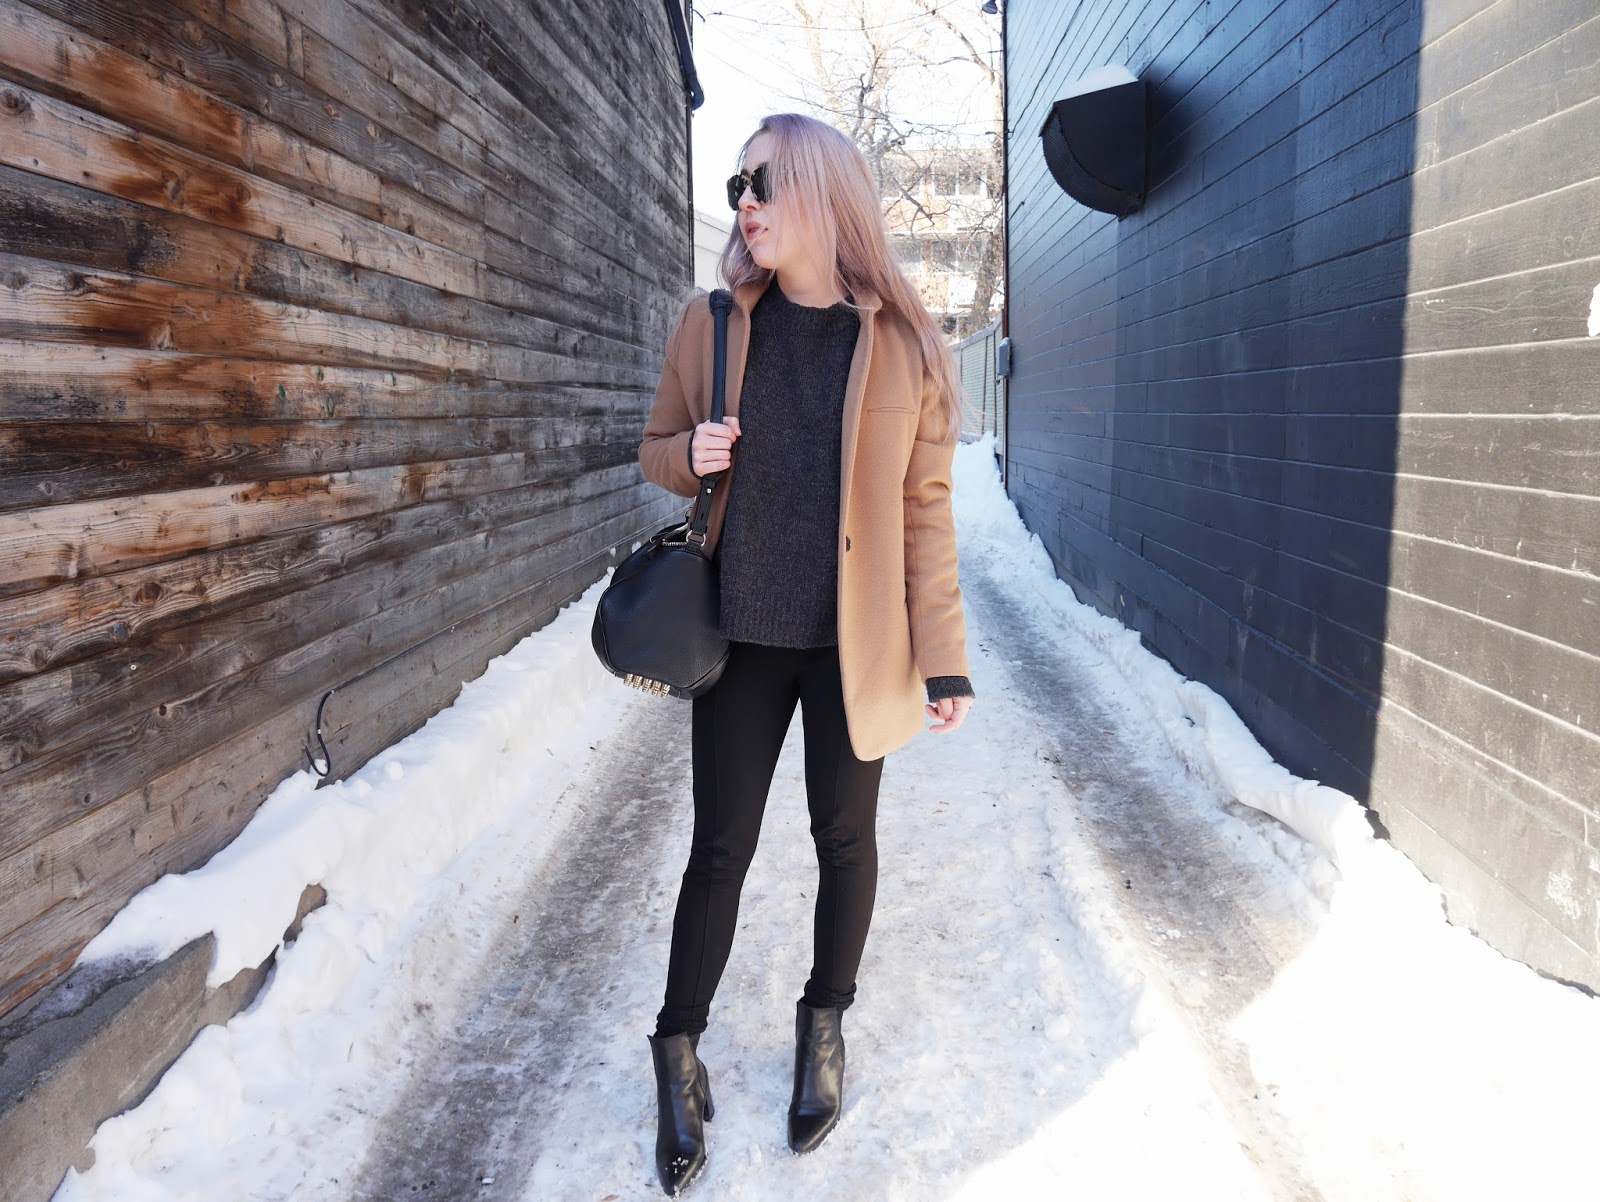 OOTD featuring a Zara camel coat, Oak and Fort sweater, Zara leggings and boots, and Alexander Wang Rocco